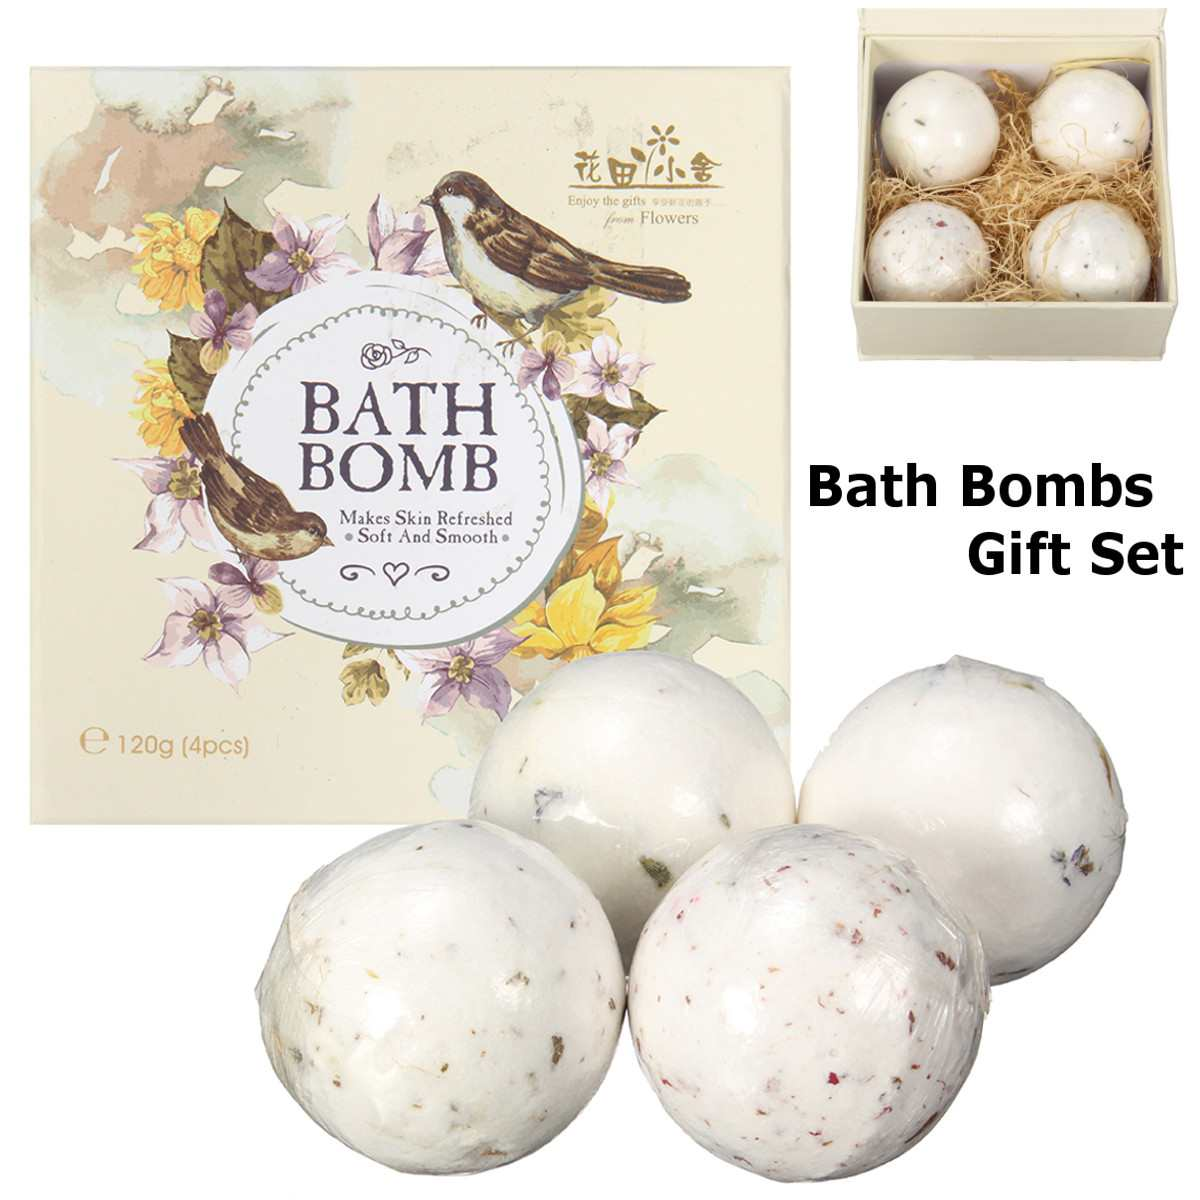 4Pcs/set Aromatherapy Bath Bombs For Adults And Kids Bubbles Moisturizing Relaxing Spa Balls Refresh Skin Soft Smooth Bath Care